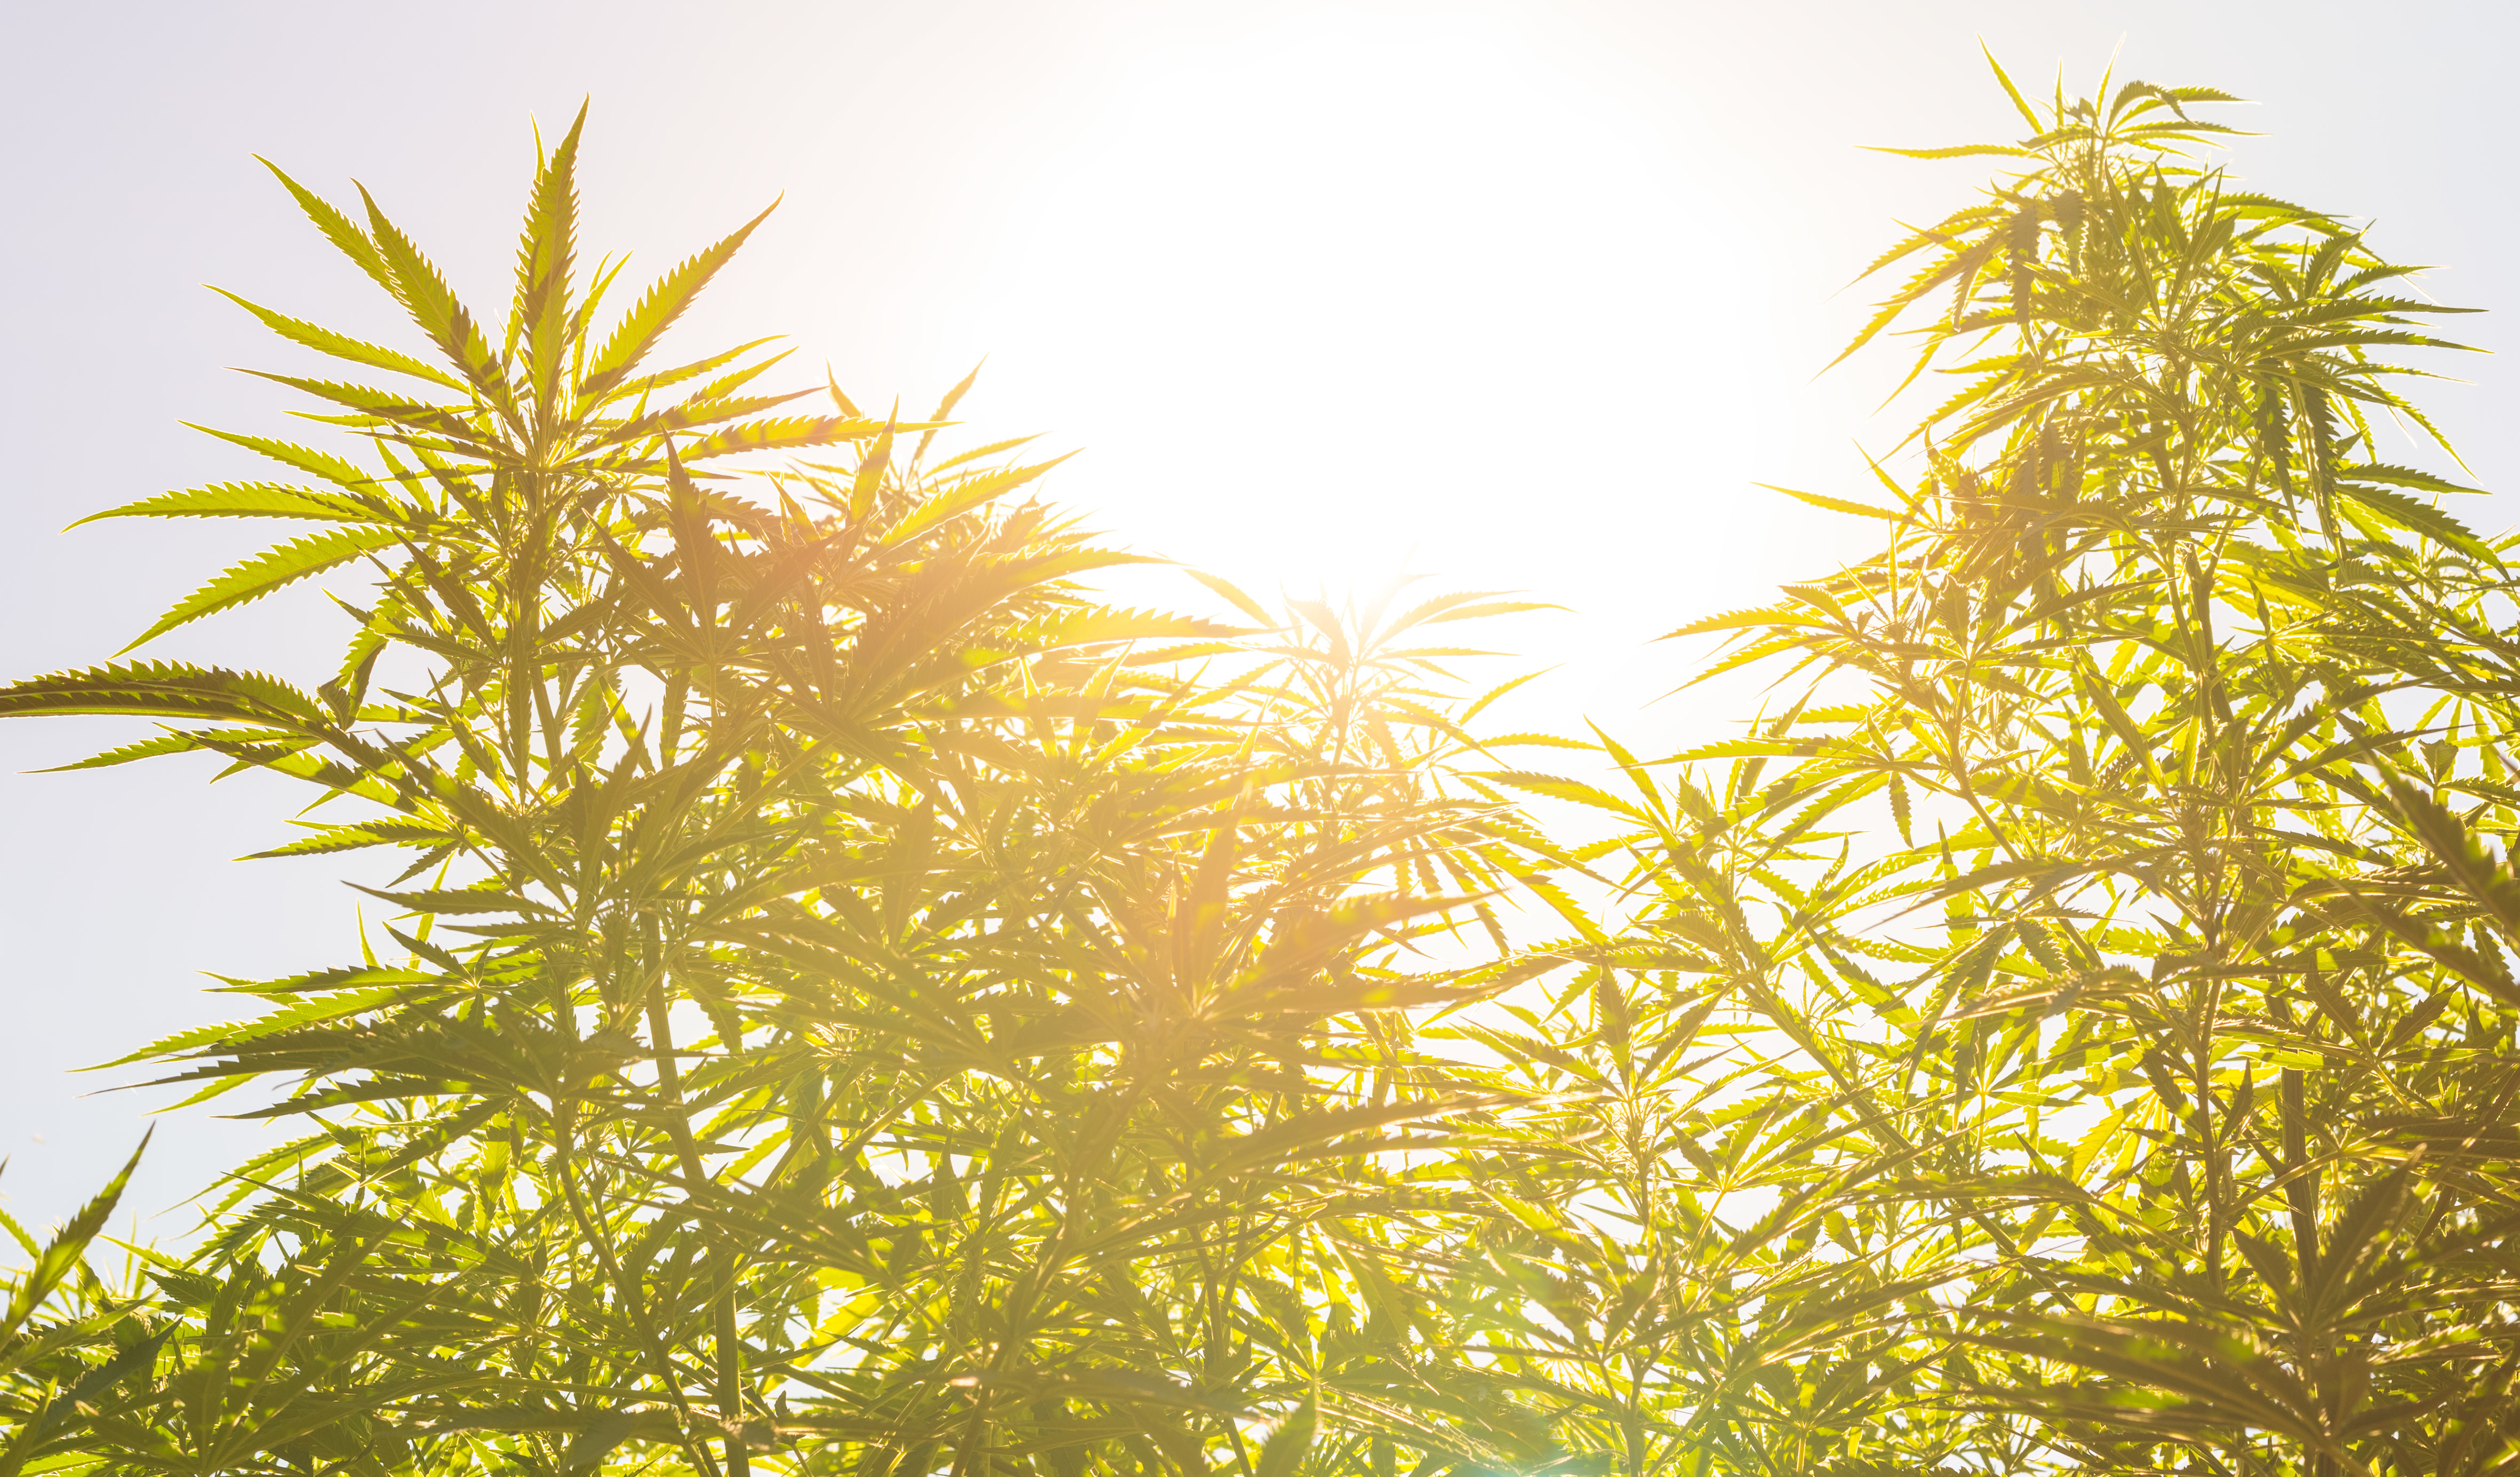 Marijuana (cannabis) plants before harvest time in sunshine